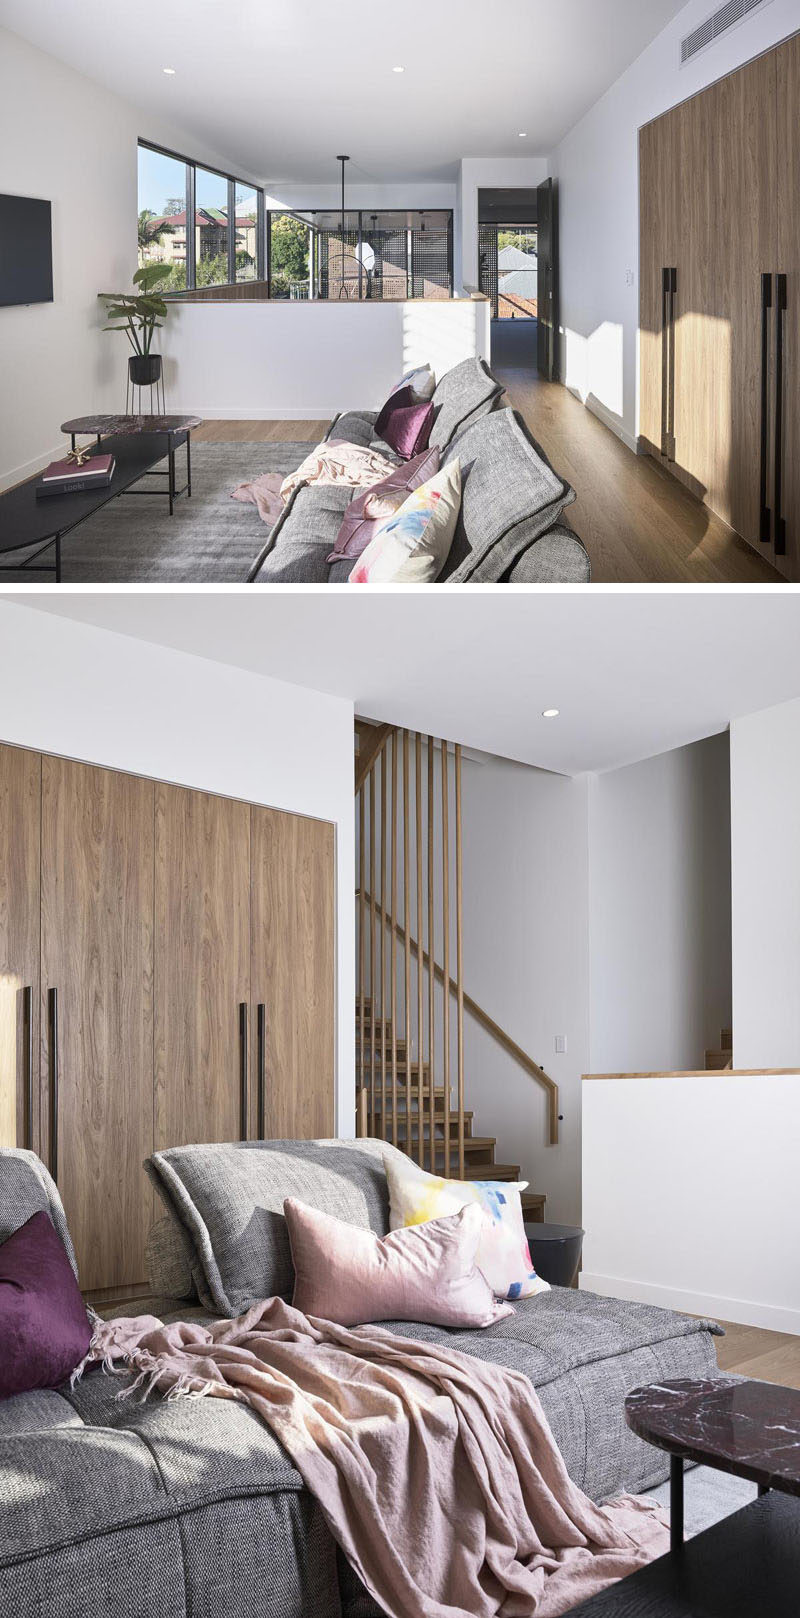 Living Room Ideas - This modern living room combines grey and wood with touches of color. #ModernLivingRoom #LivingRoomIdeas